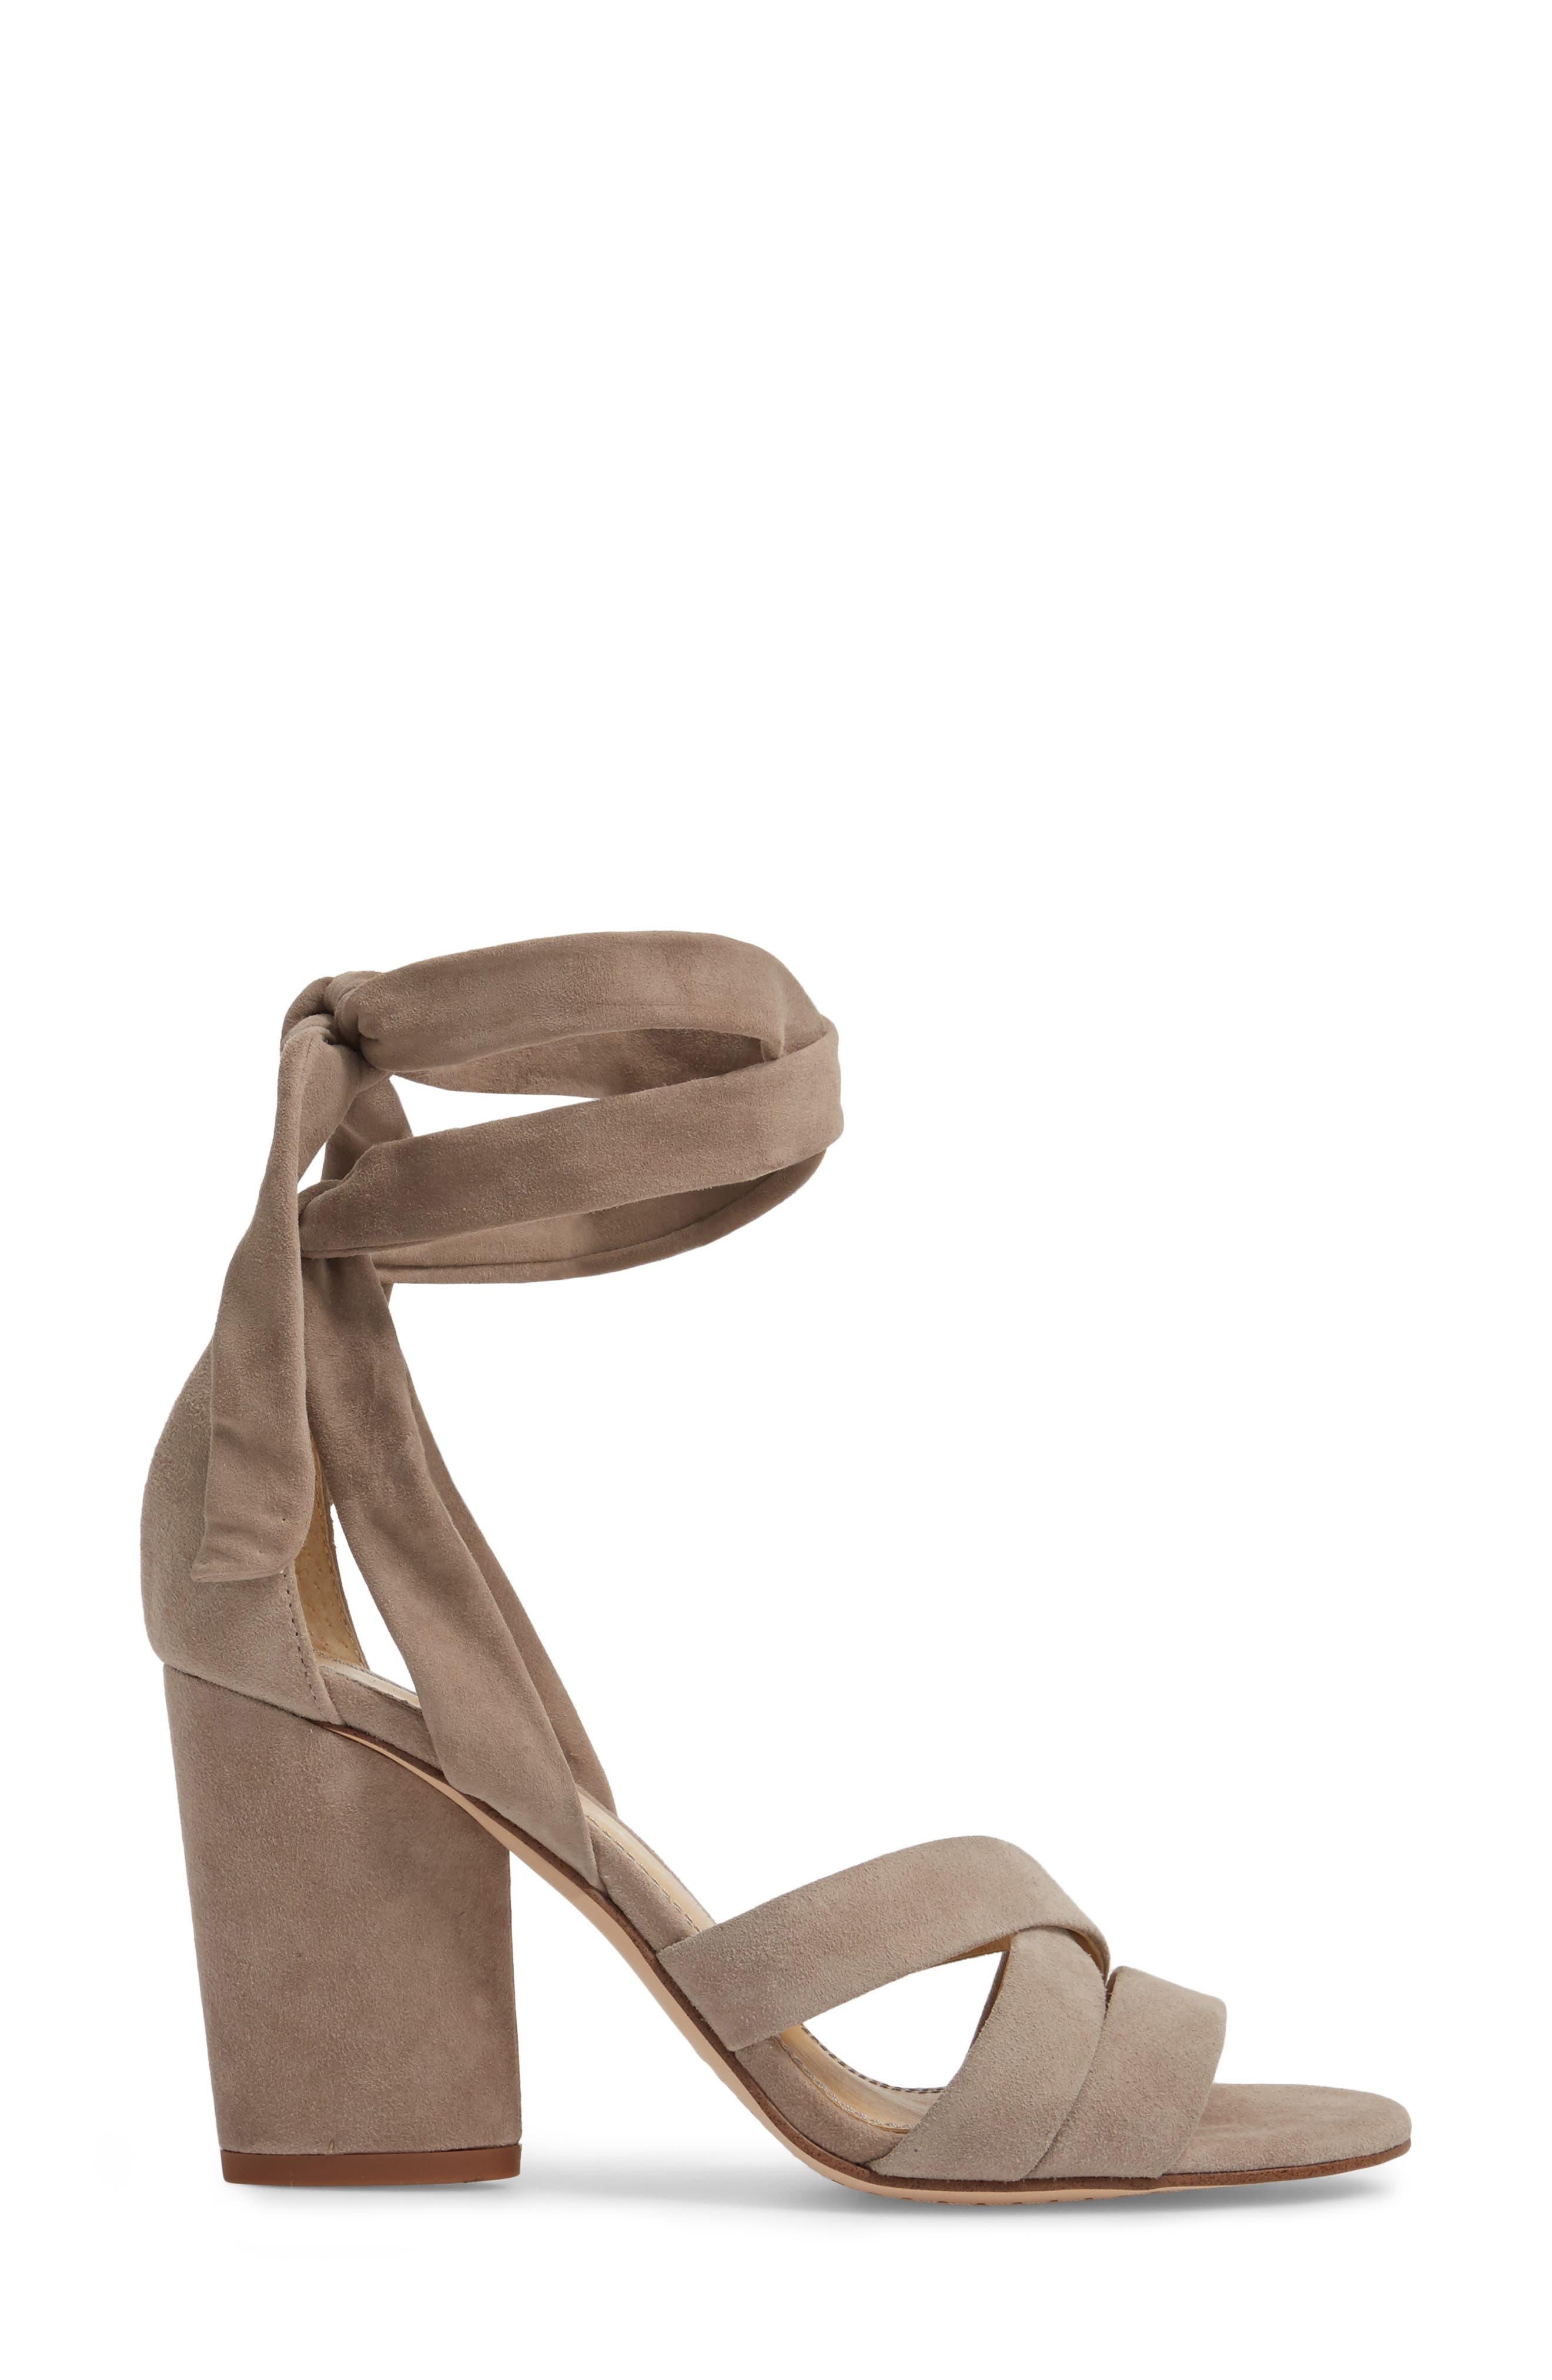 Fergie Lace-Up Sandal,                             Alternate thumbnail 3, color,                             TAUPE SUEDE